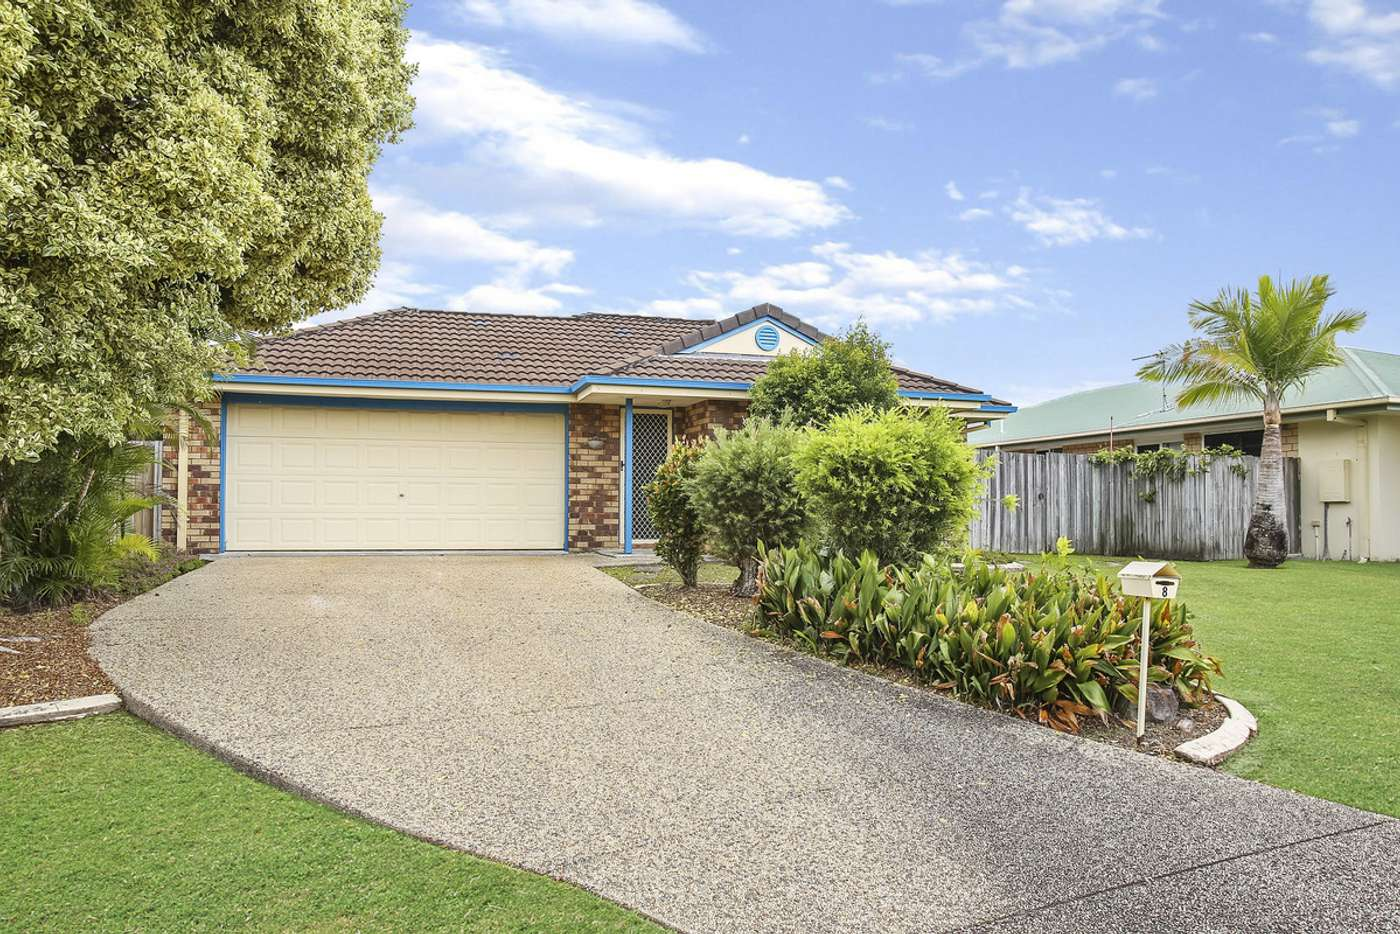 Main view of Homely house listing, 8 St James Court, Little Mountain QLD 4551